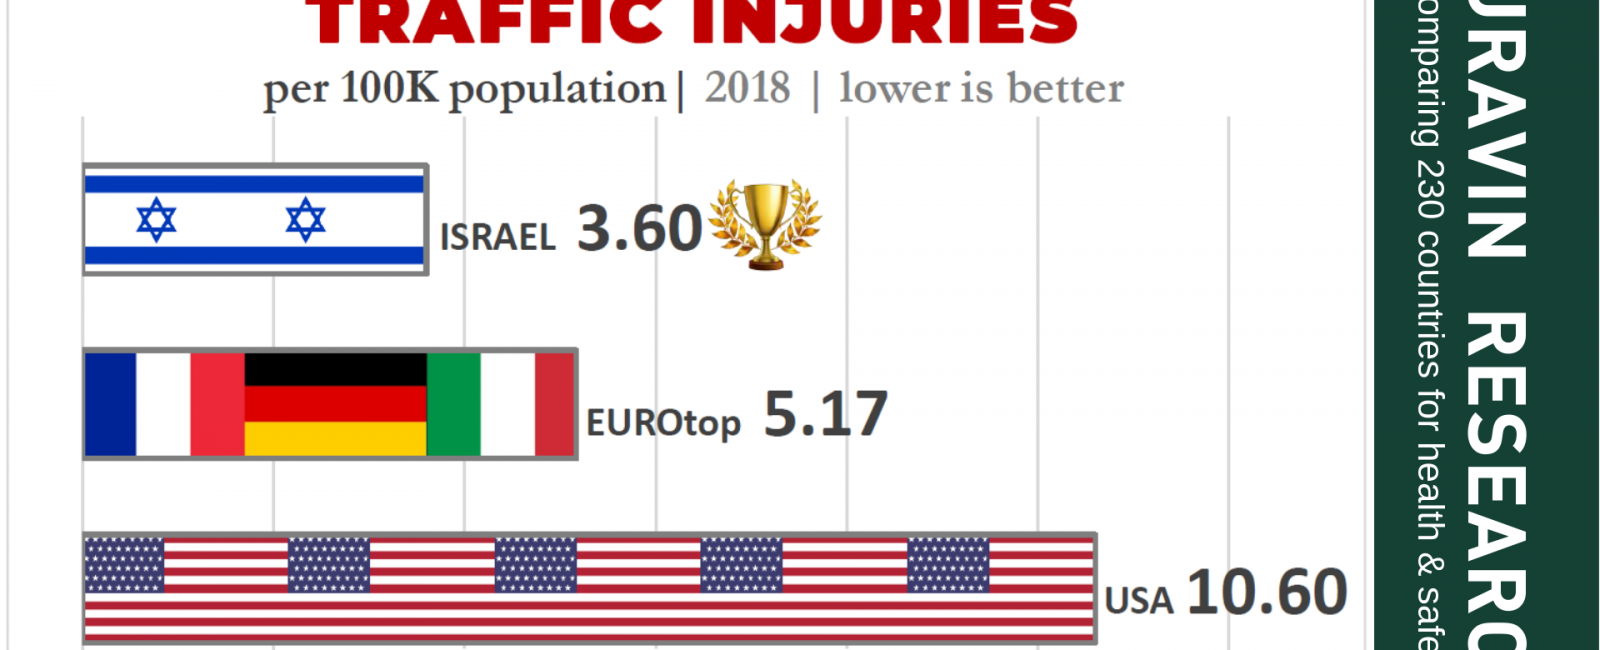 WHICH COUNTRY IS SAFER TO DRIVE? USA, EUROPE OR ISRAEL?